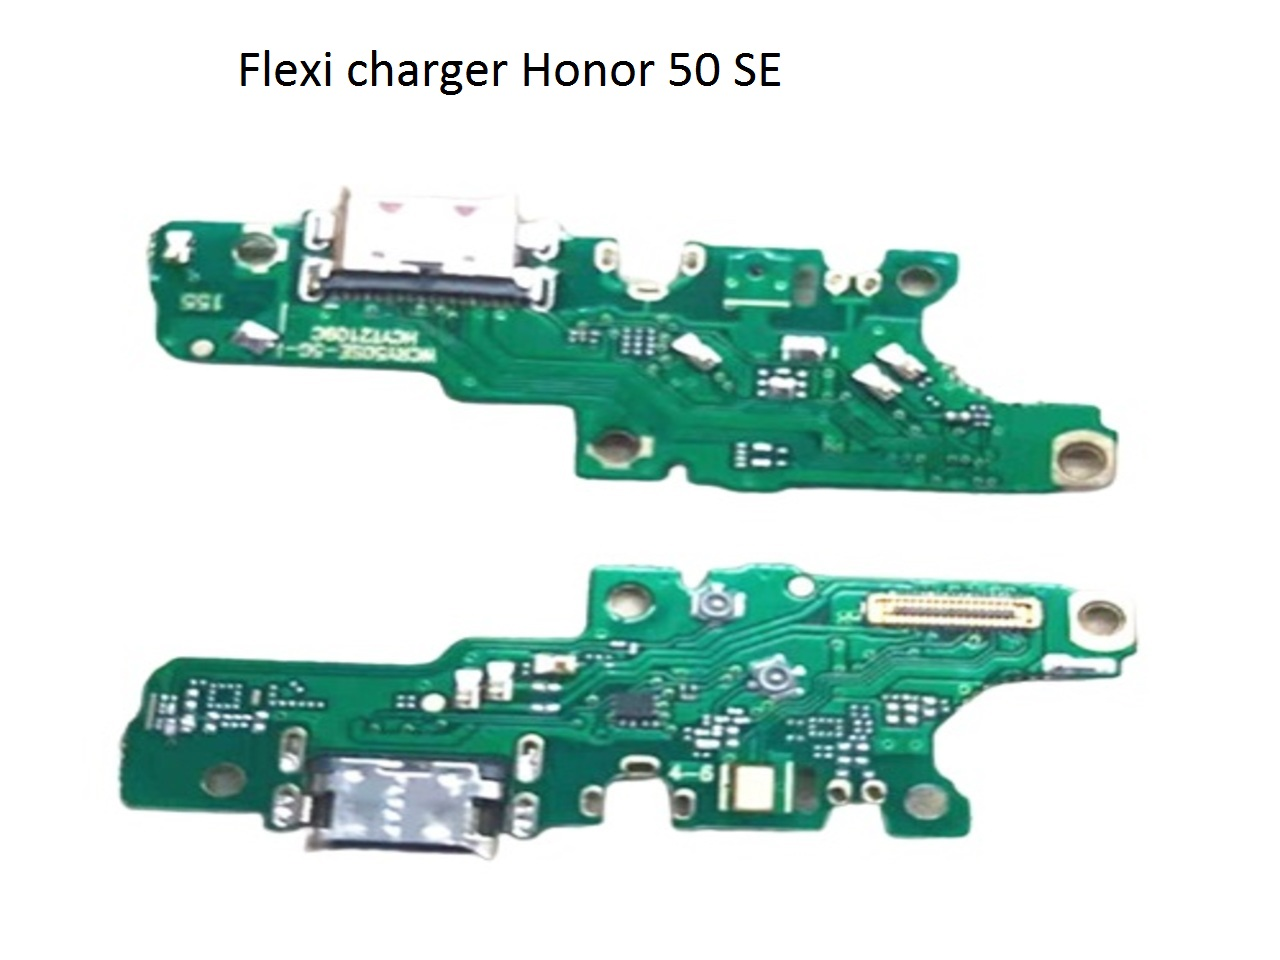 Flexi charger honor 50 se